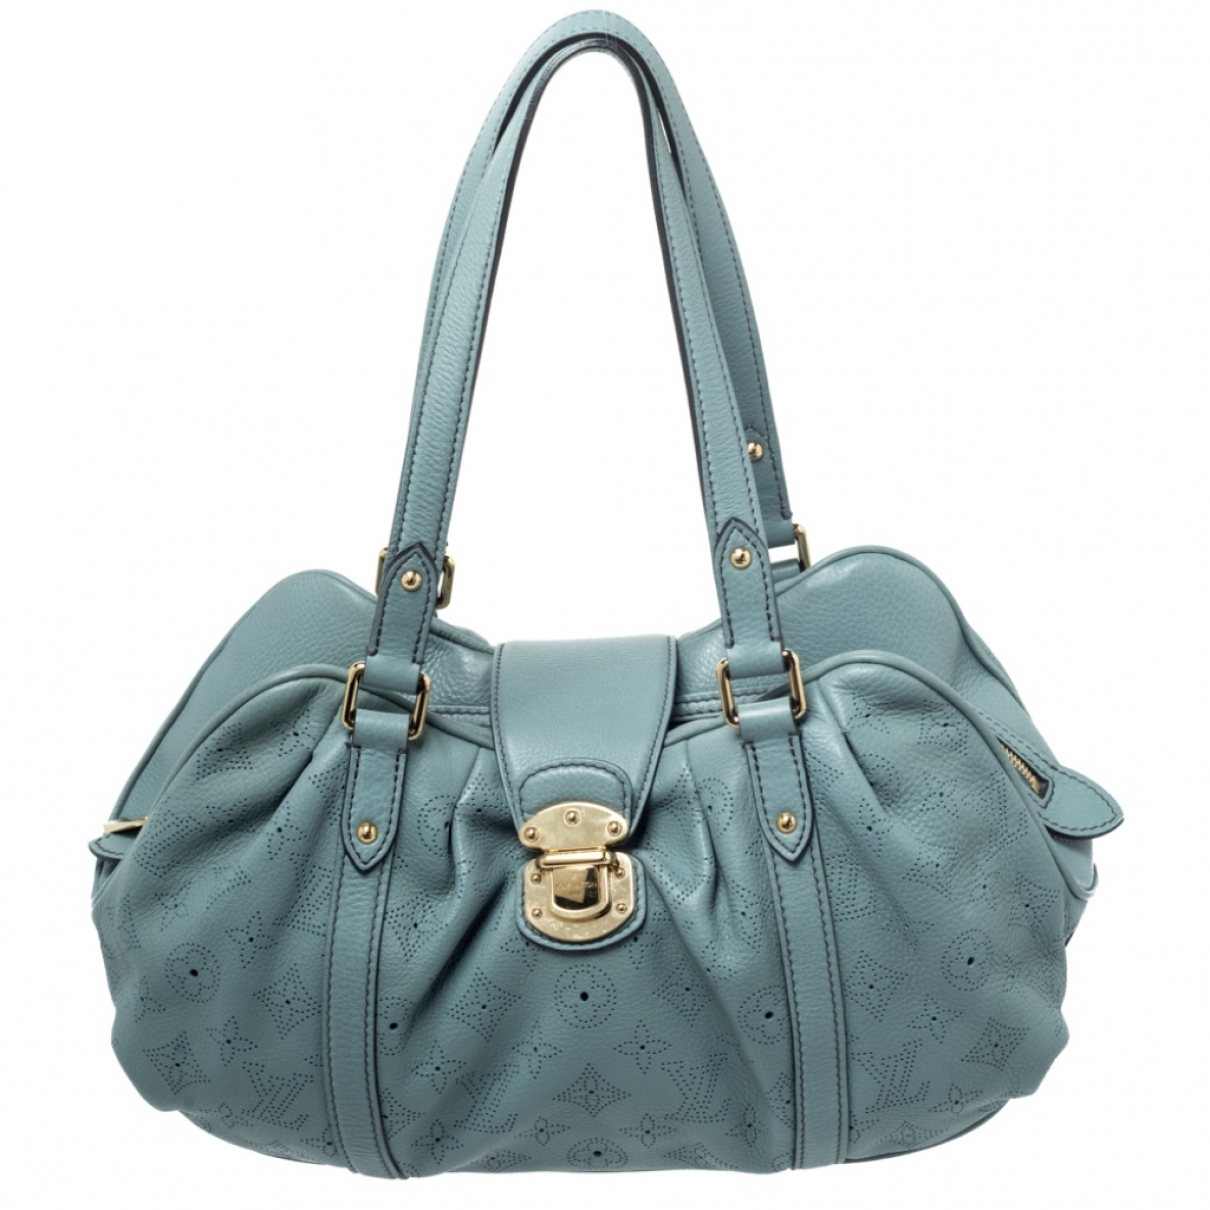 Louis Vuitton Mahina Handtasche in  Blau Leder